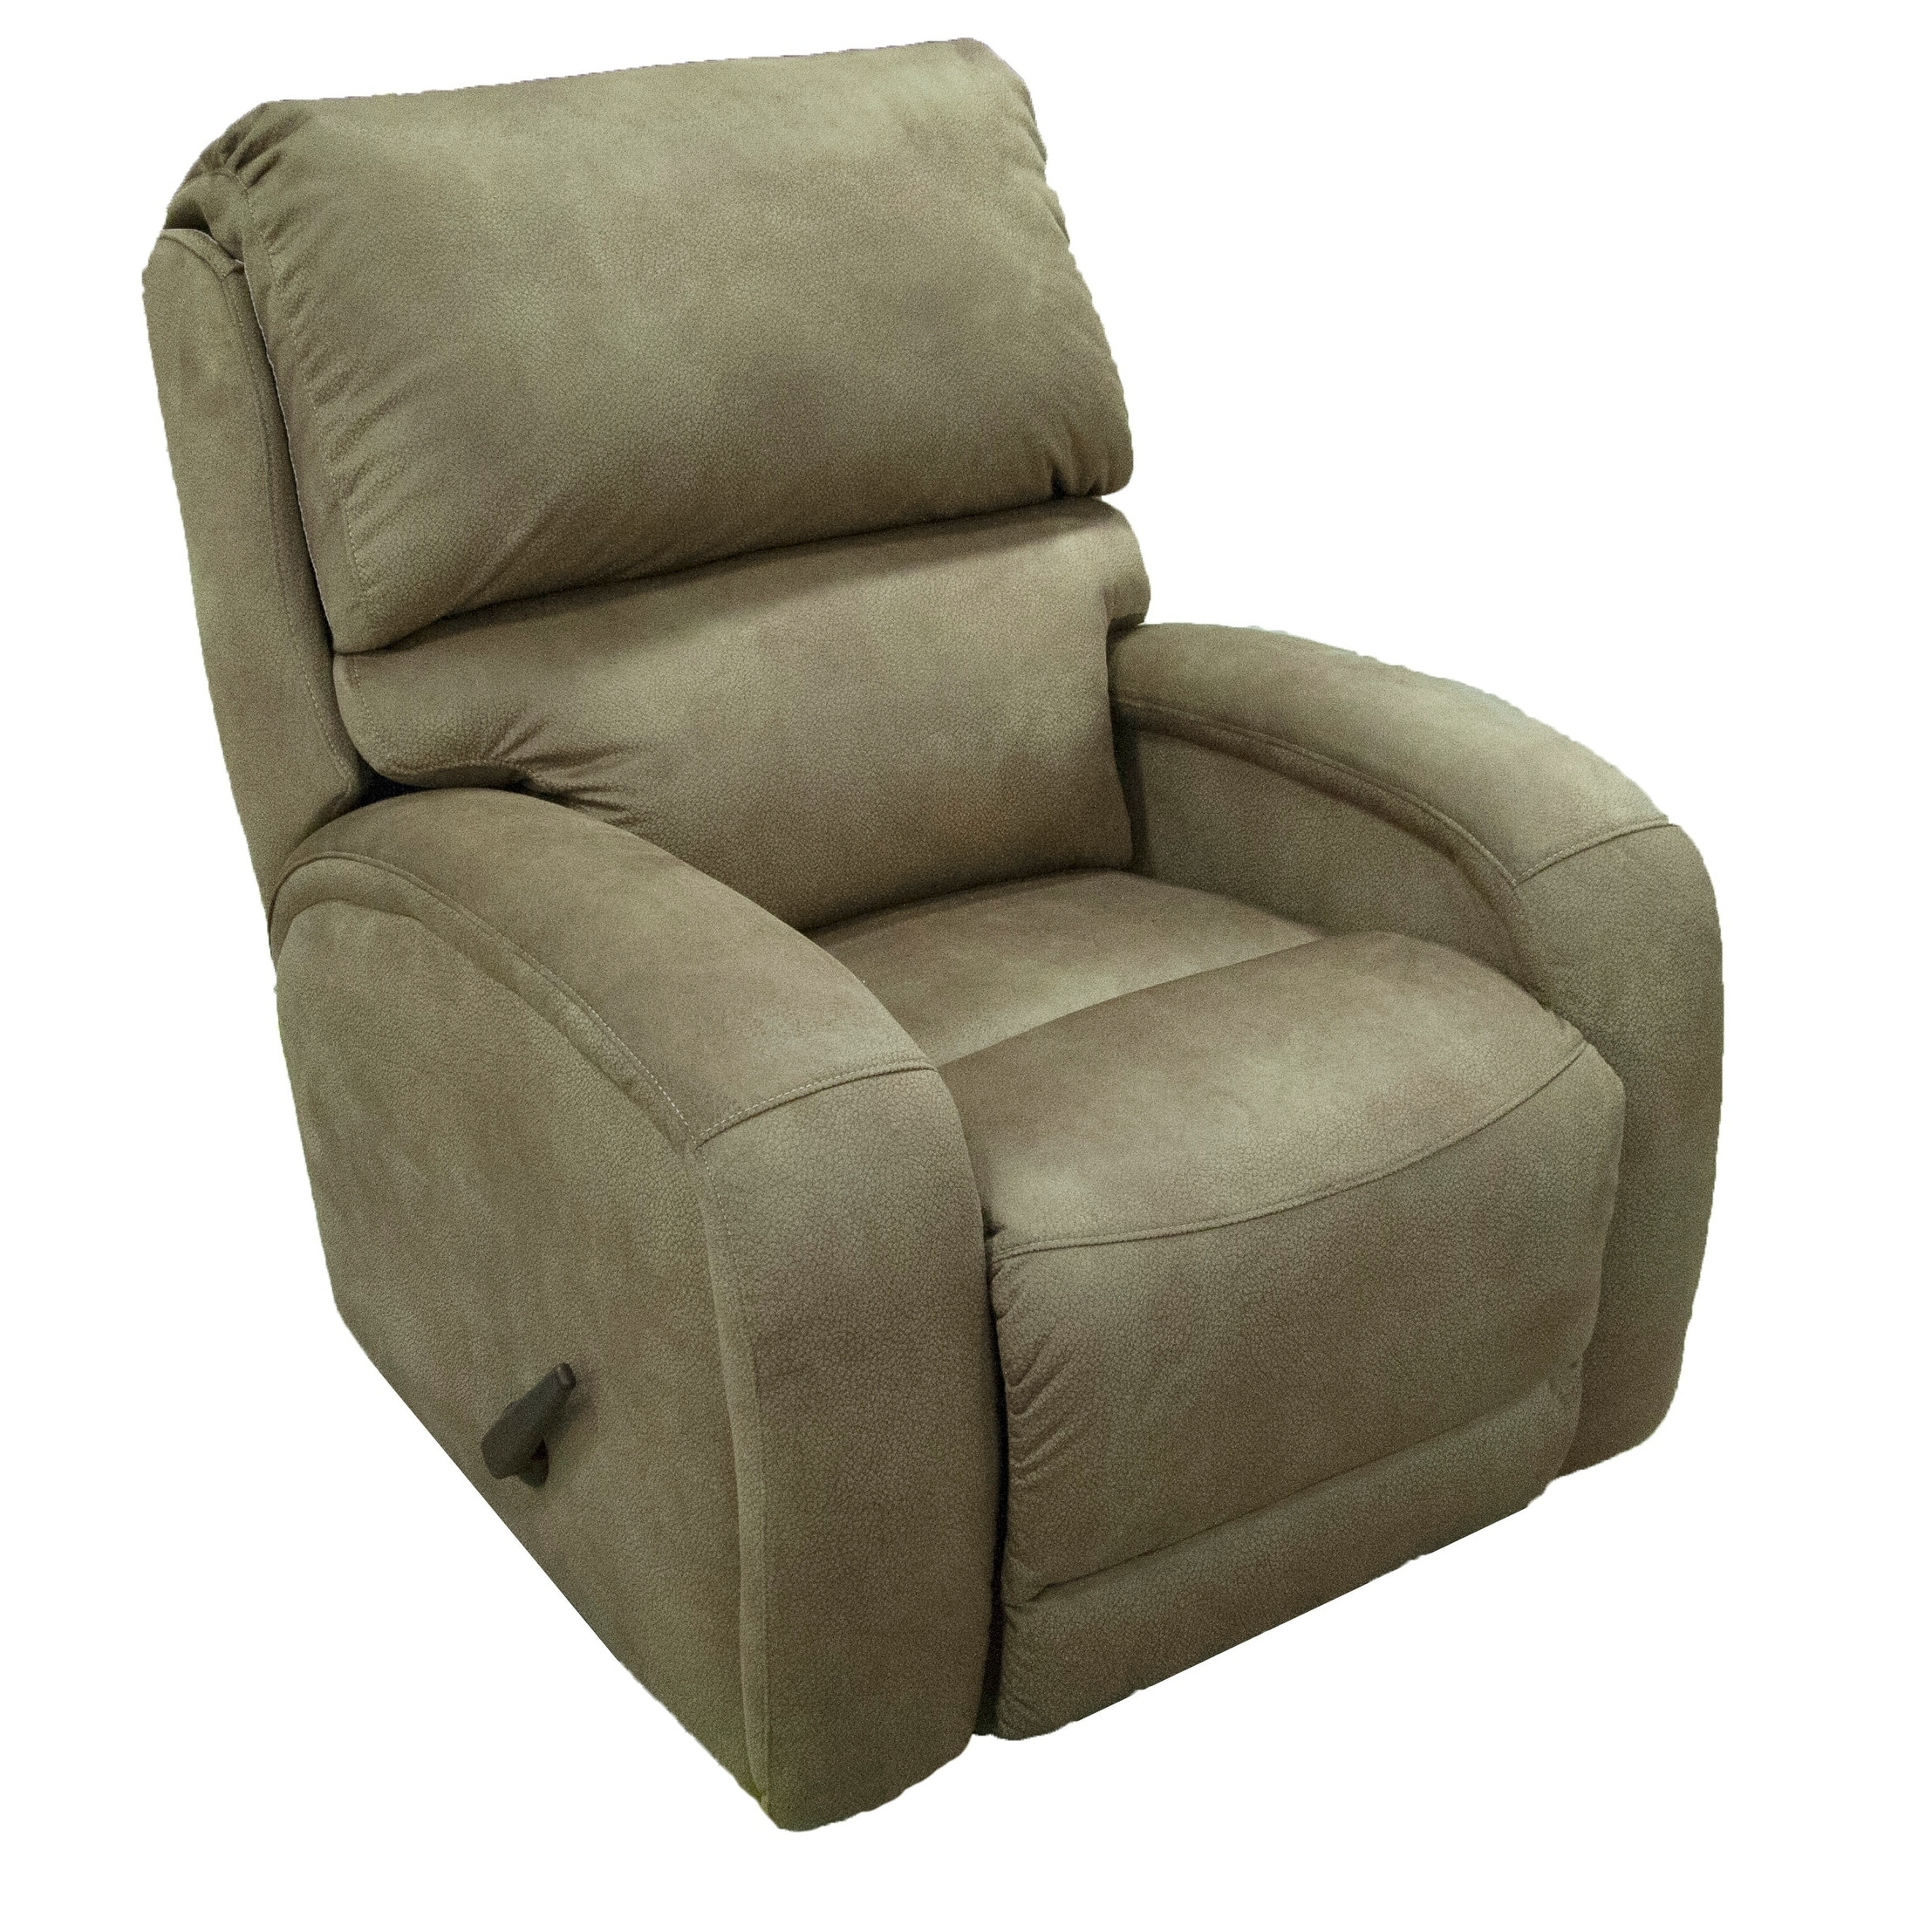 Swivel Rocker Recliner Chair Southern Motion Fandango Brown Swivel Rocker Recliner